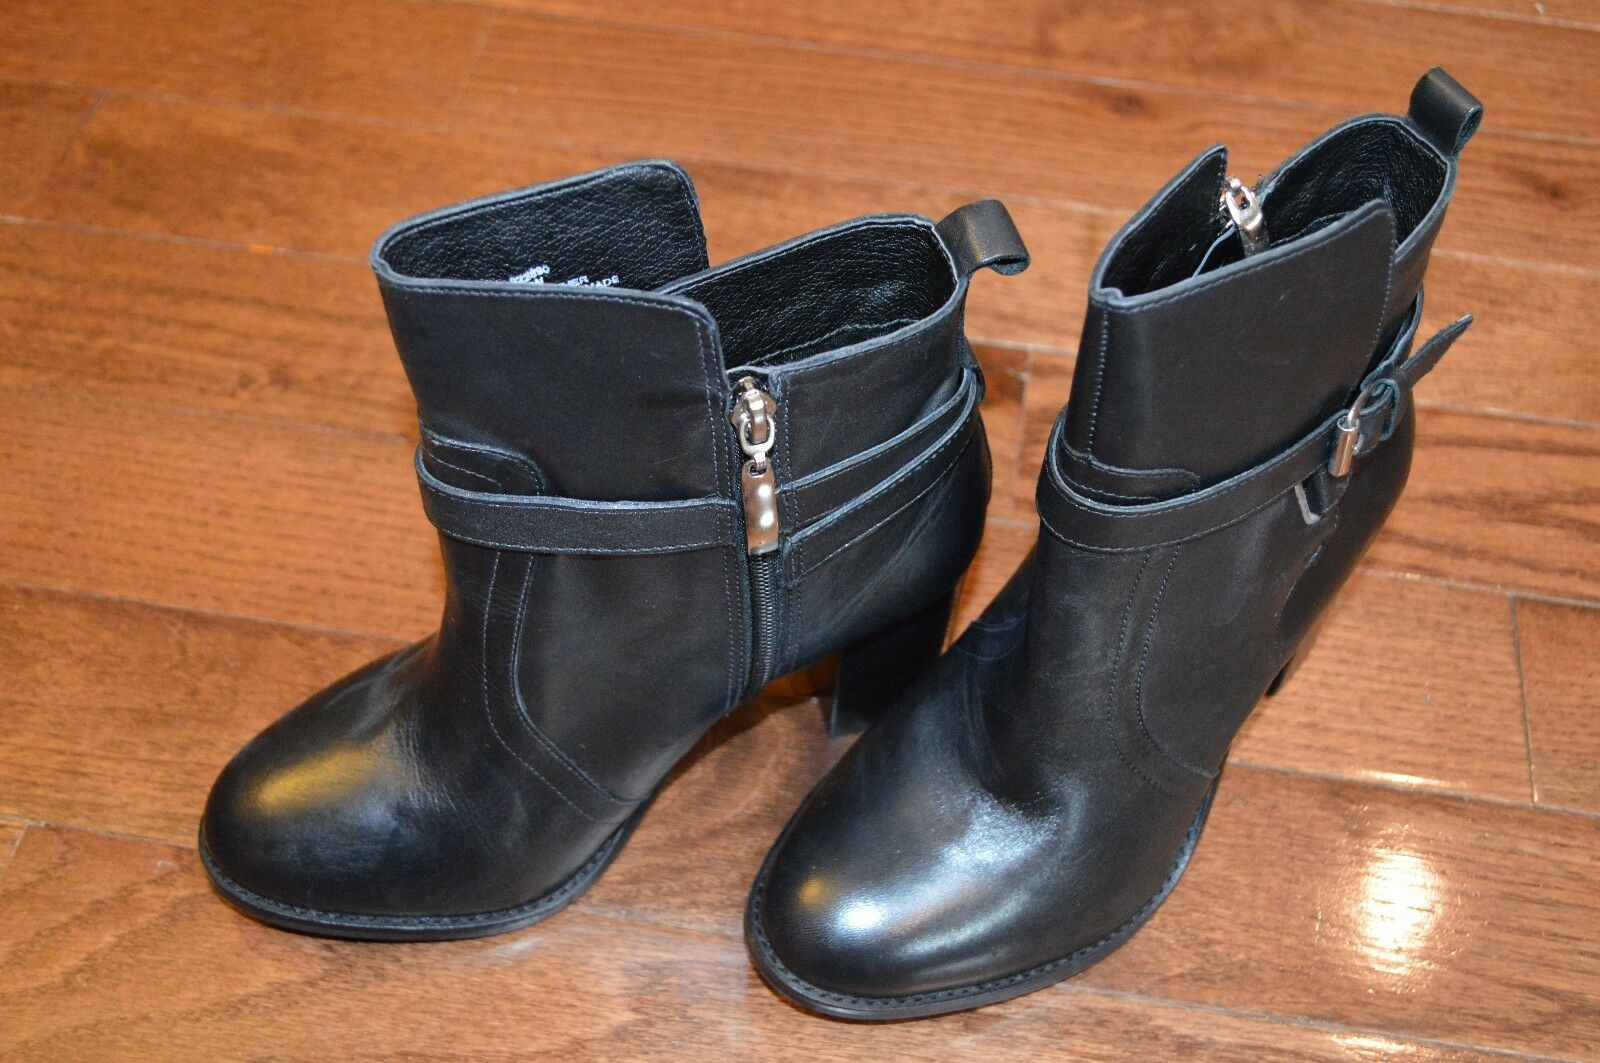 Lane Bryant Cara Leder city heel ankle boot Größe 8W